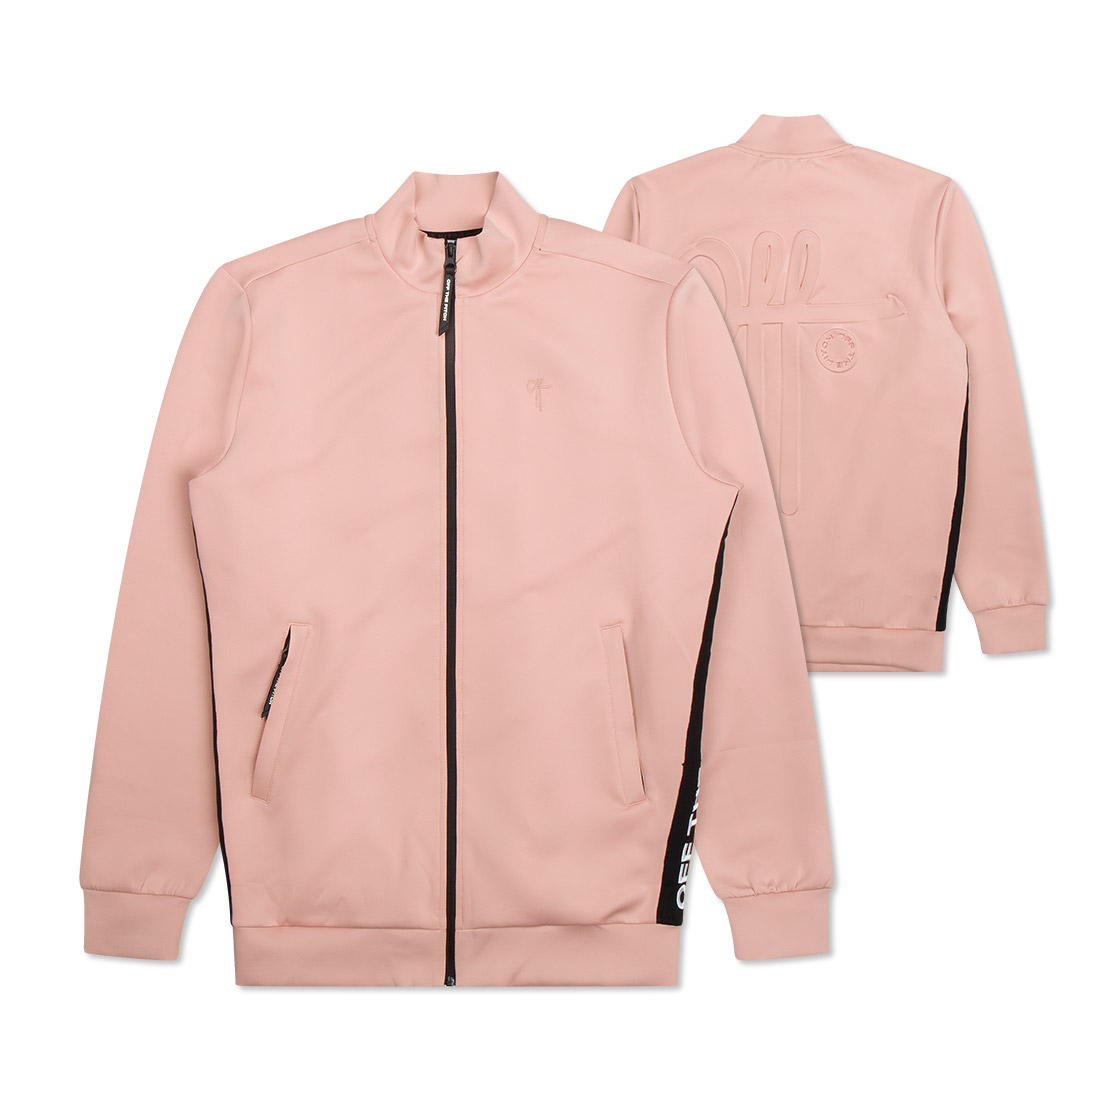 The Soul Track Jacket Off The Pitch